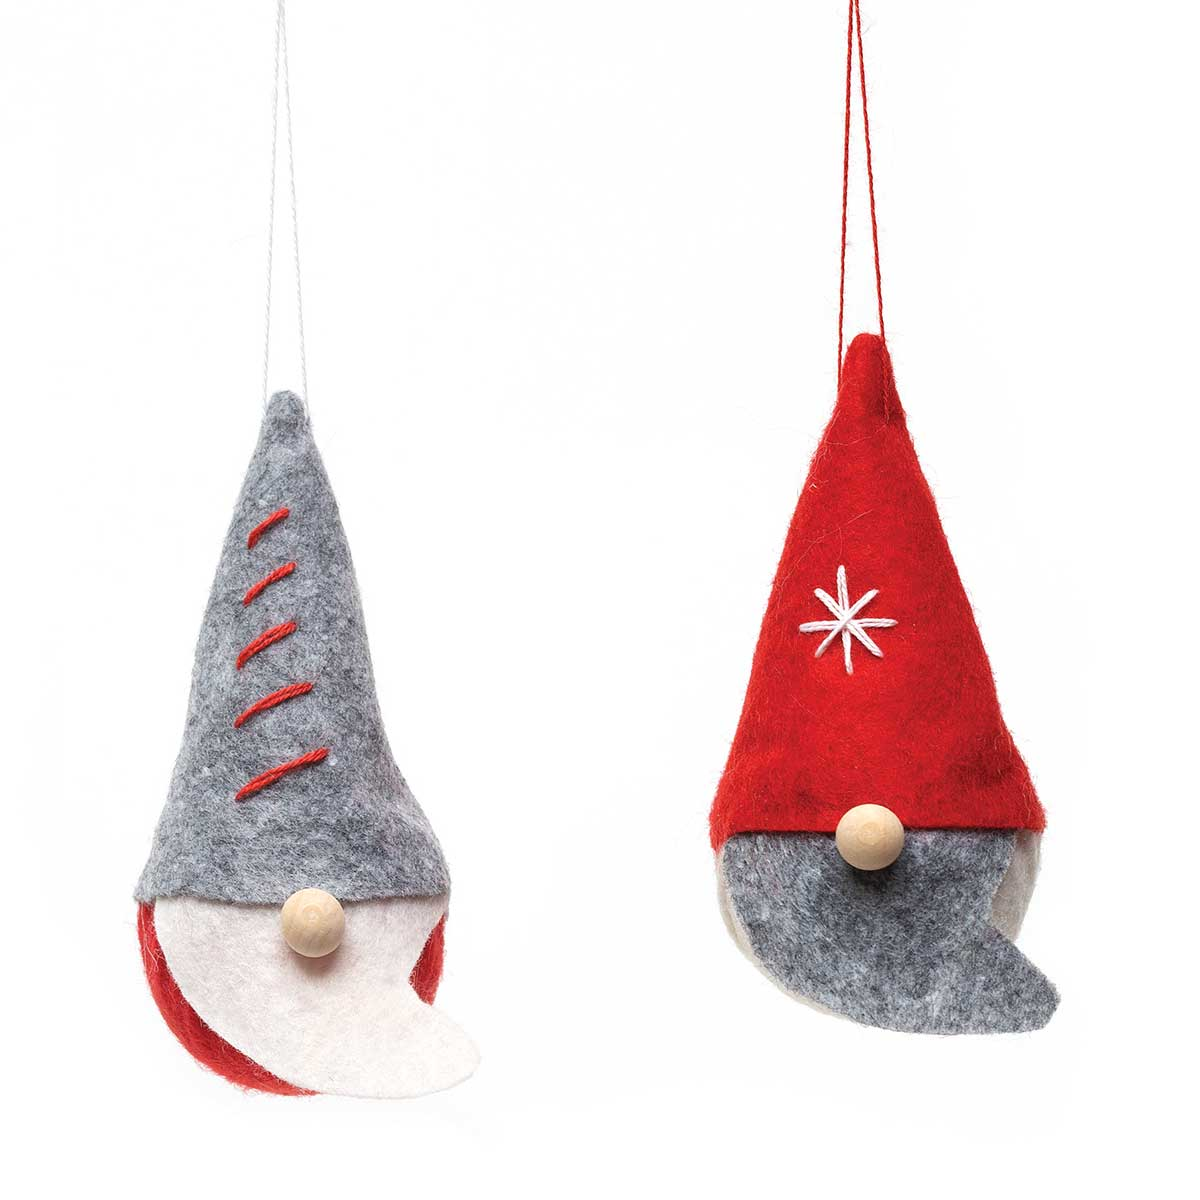 GNOME ORNAMENT WITH SNOWFLAKE STITCHING &